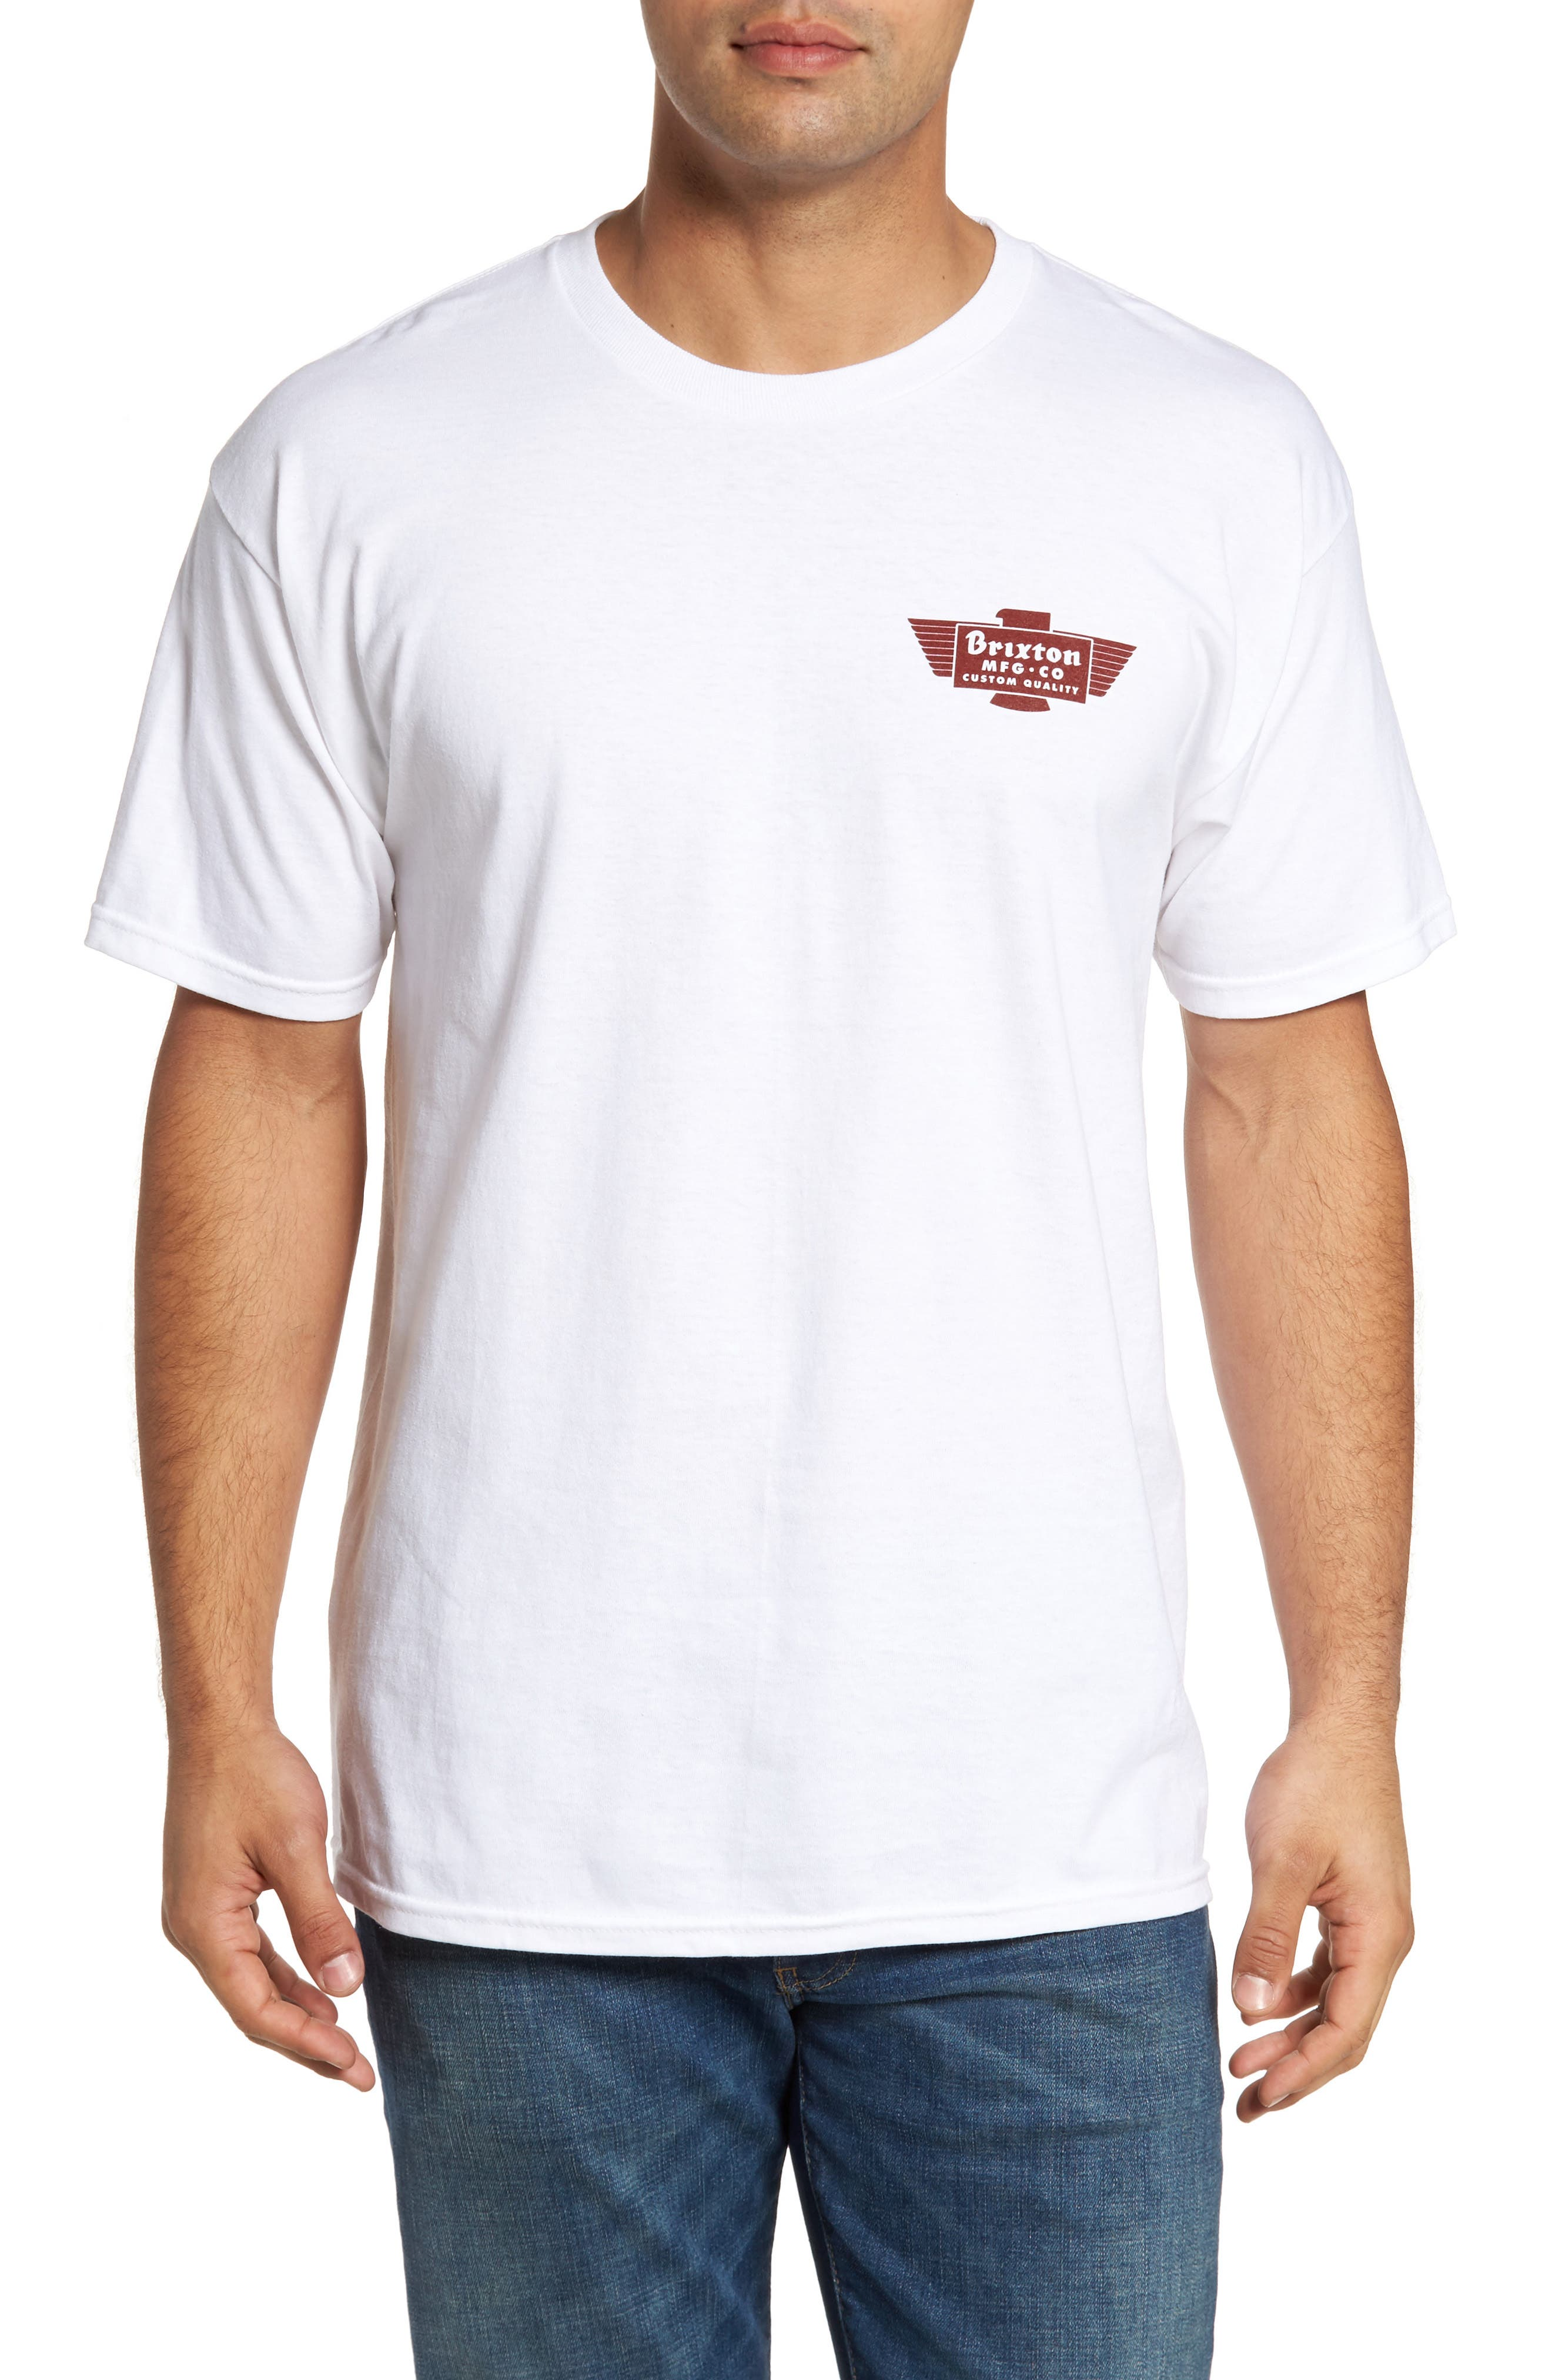 Cylinder Standard T-Shirt,                             Main thumbnail 1, color,                             White/ Burgundy